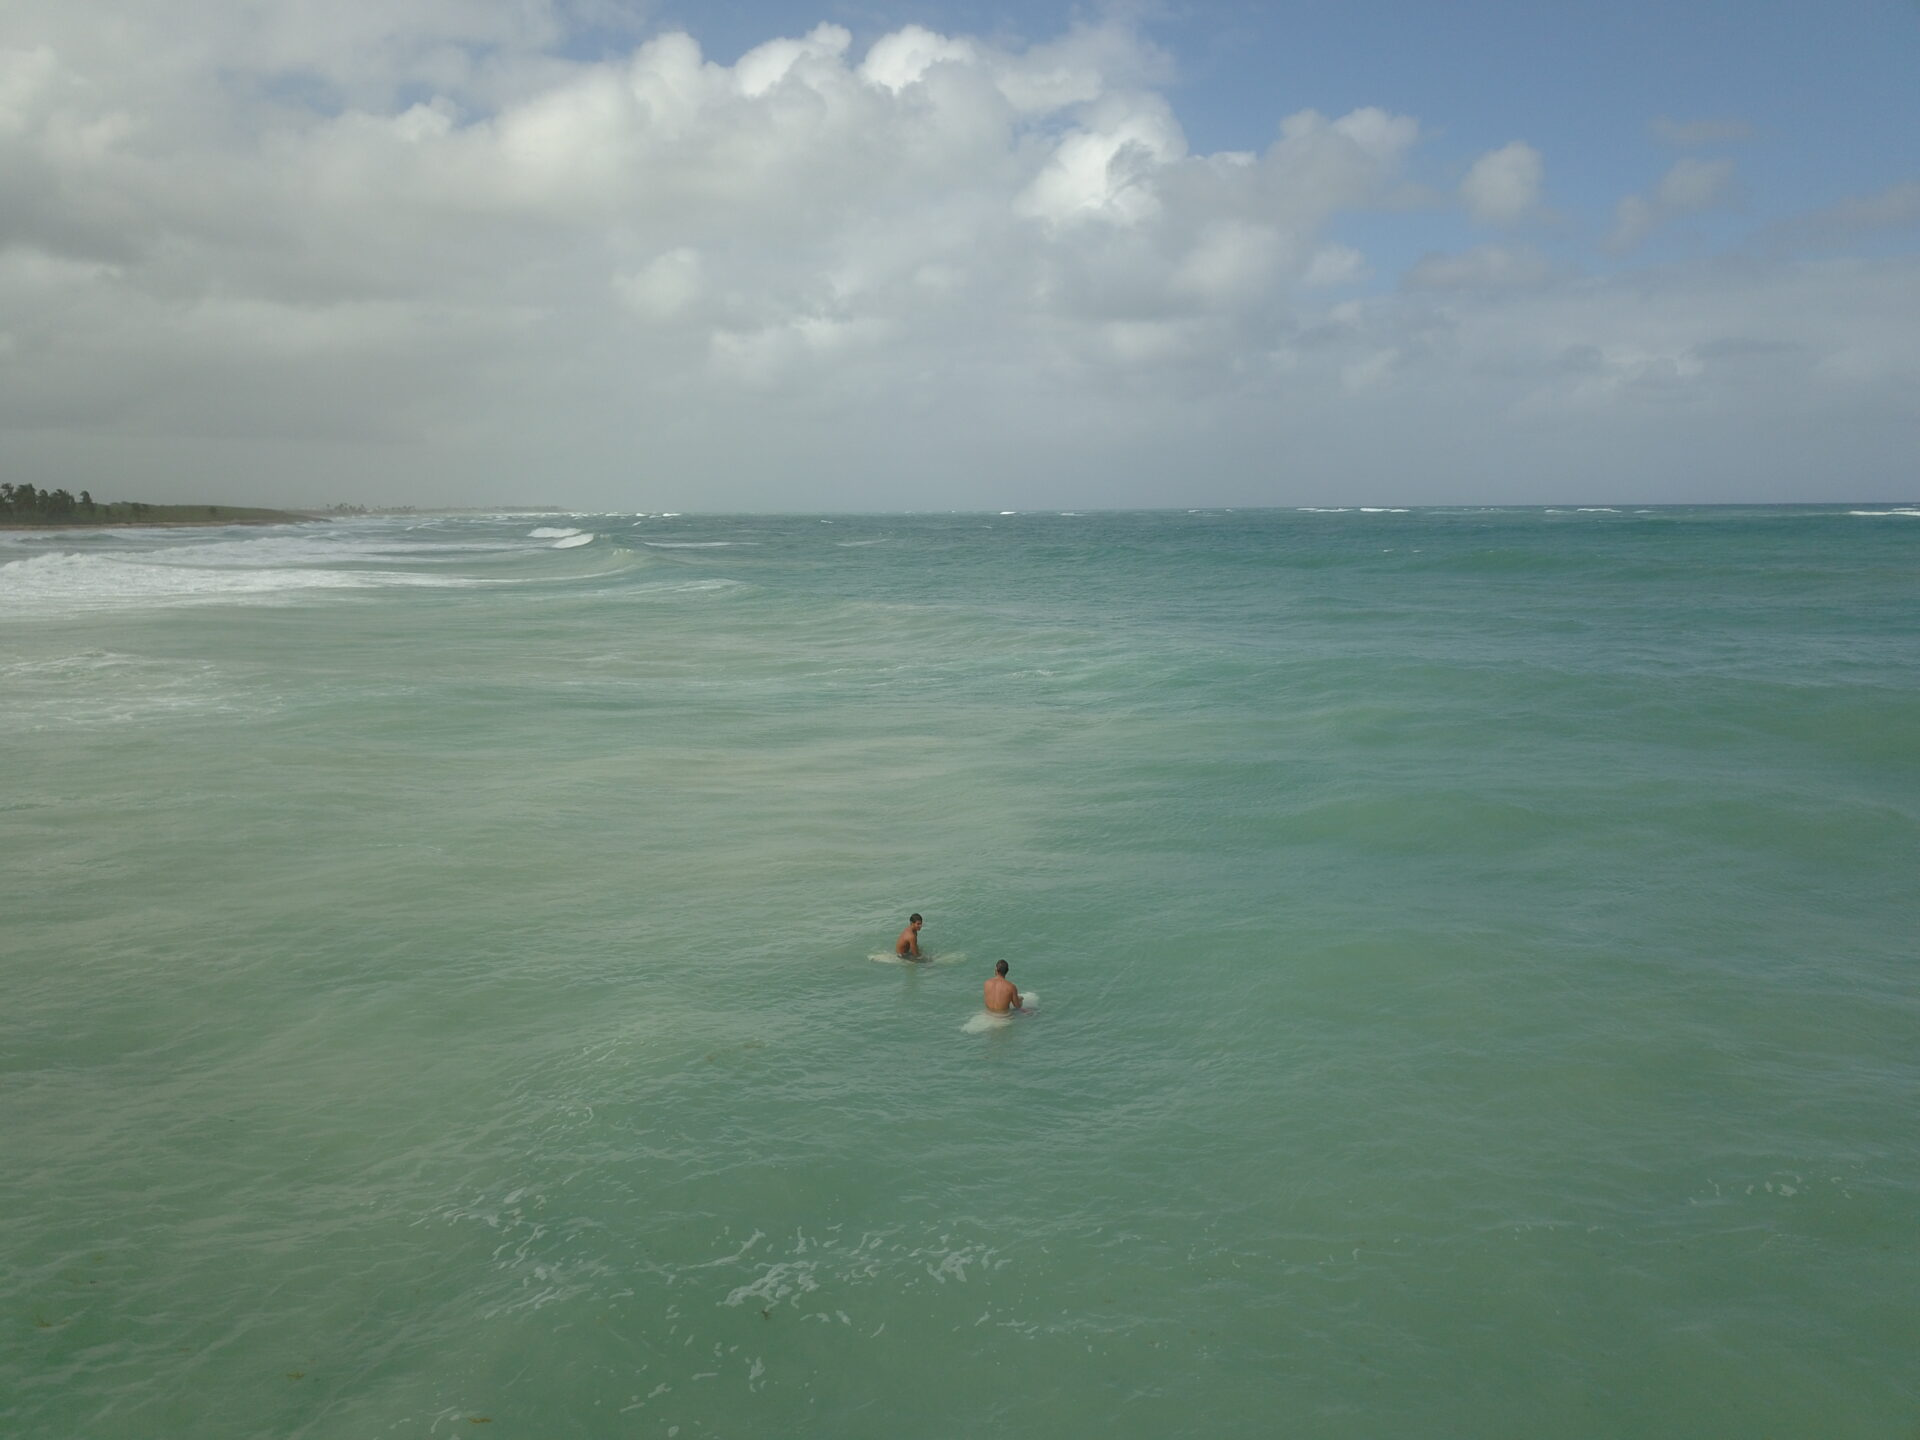 Surfers waiting in the sea